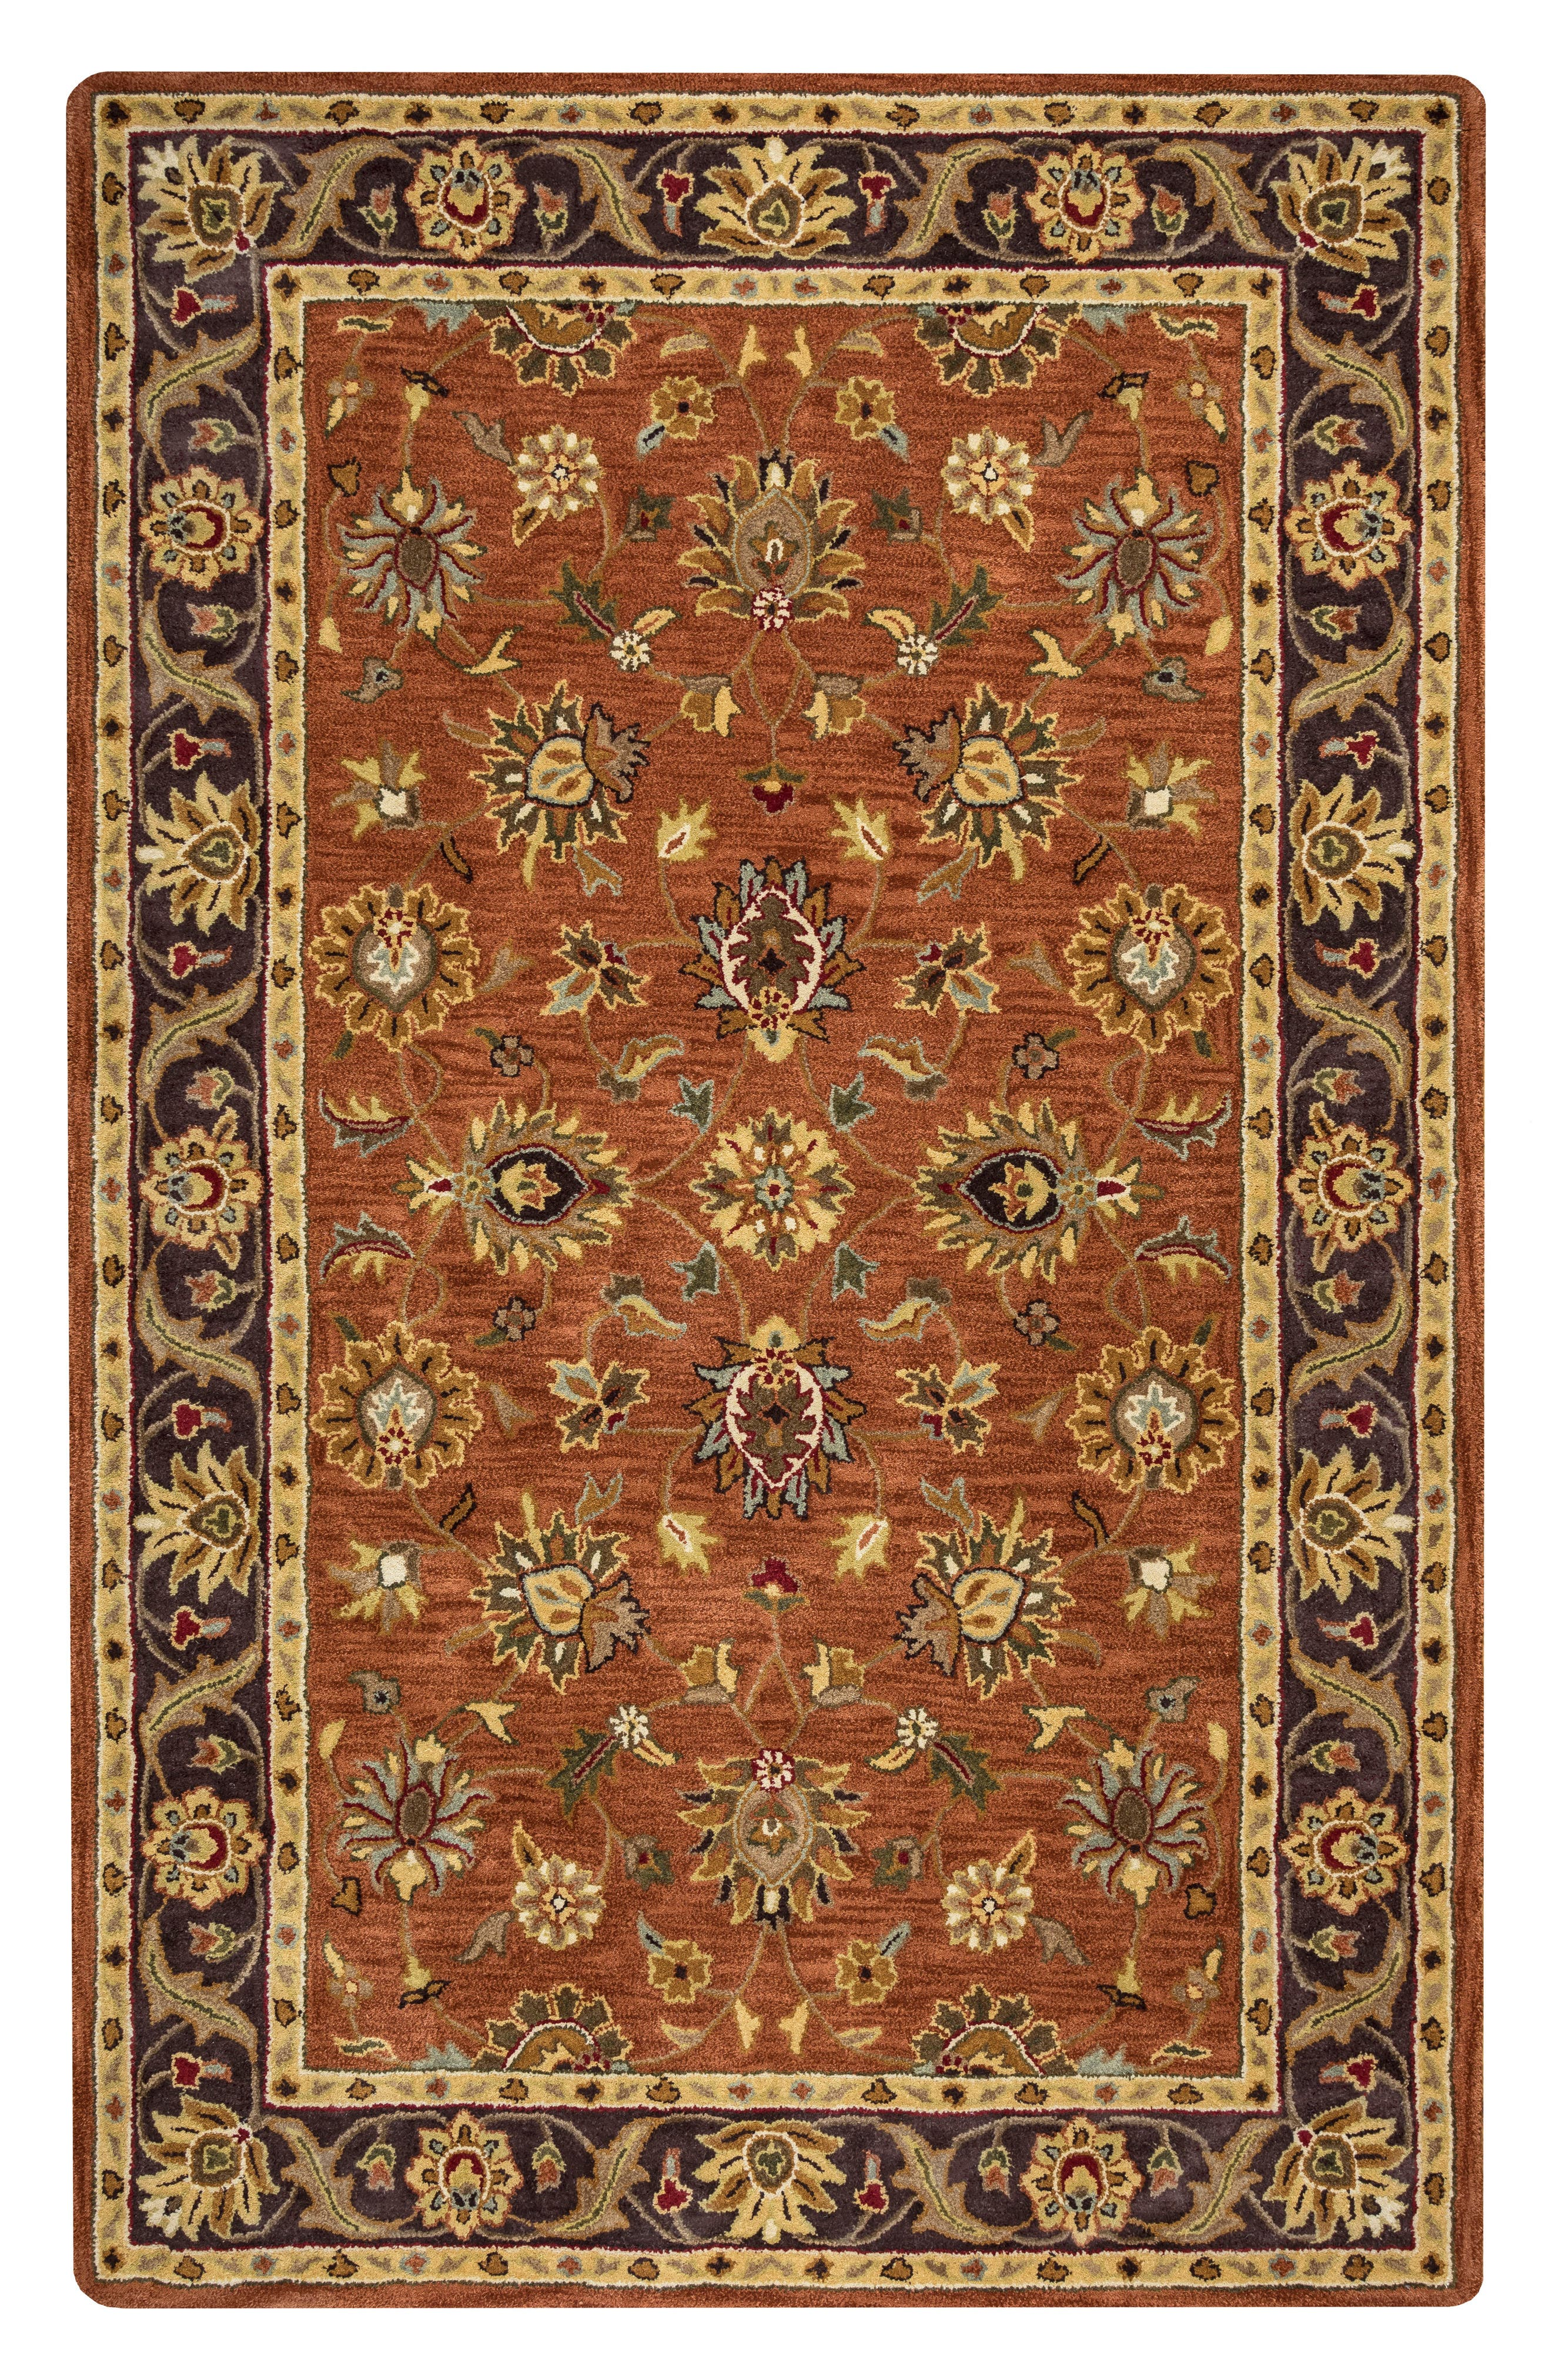 Amalia Hand Tufted Wool Area Rug,                             Main thumbnail 1, color,                             220